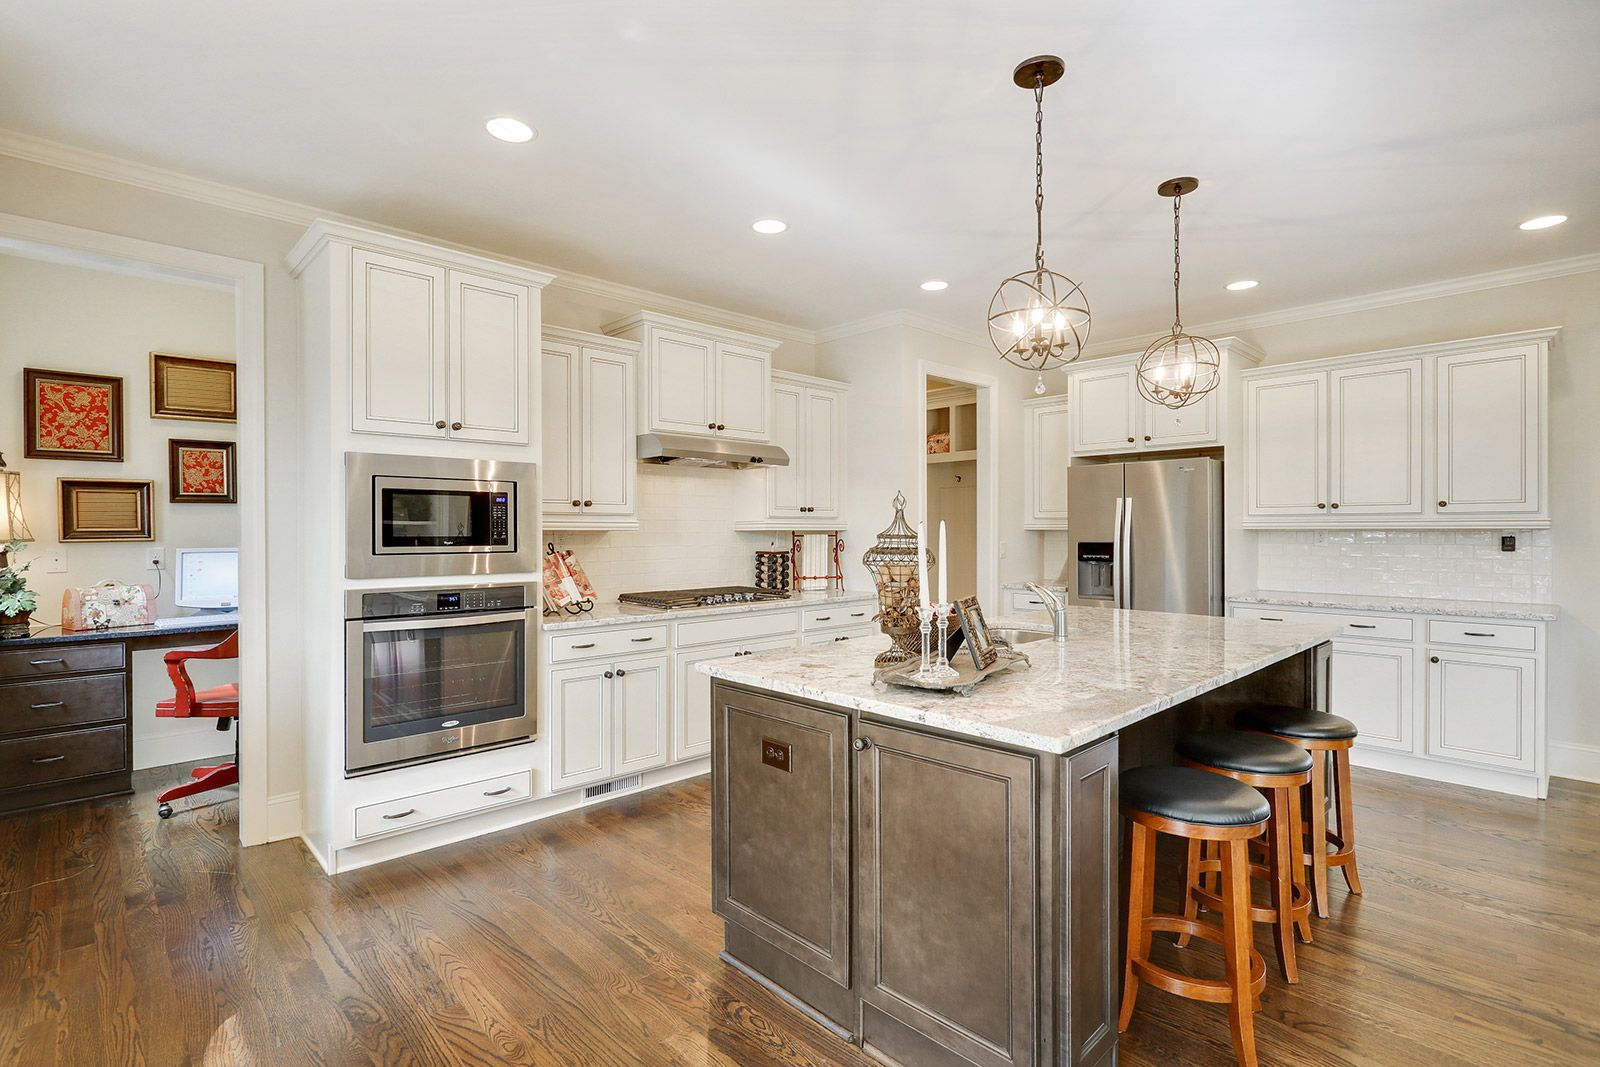 Harcrest Homes At Sterling On The Lake Light And Airy Kitchen With Granite Countertops And Stainless Steel Appl Kitchen Design Color Kitchen Tiles Design Home